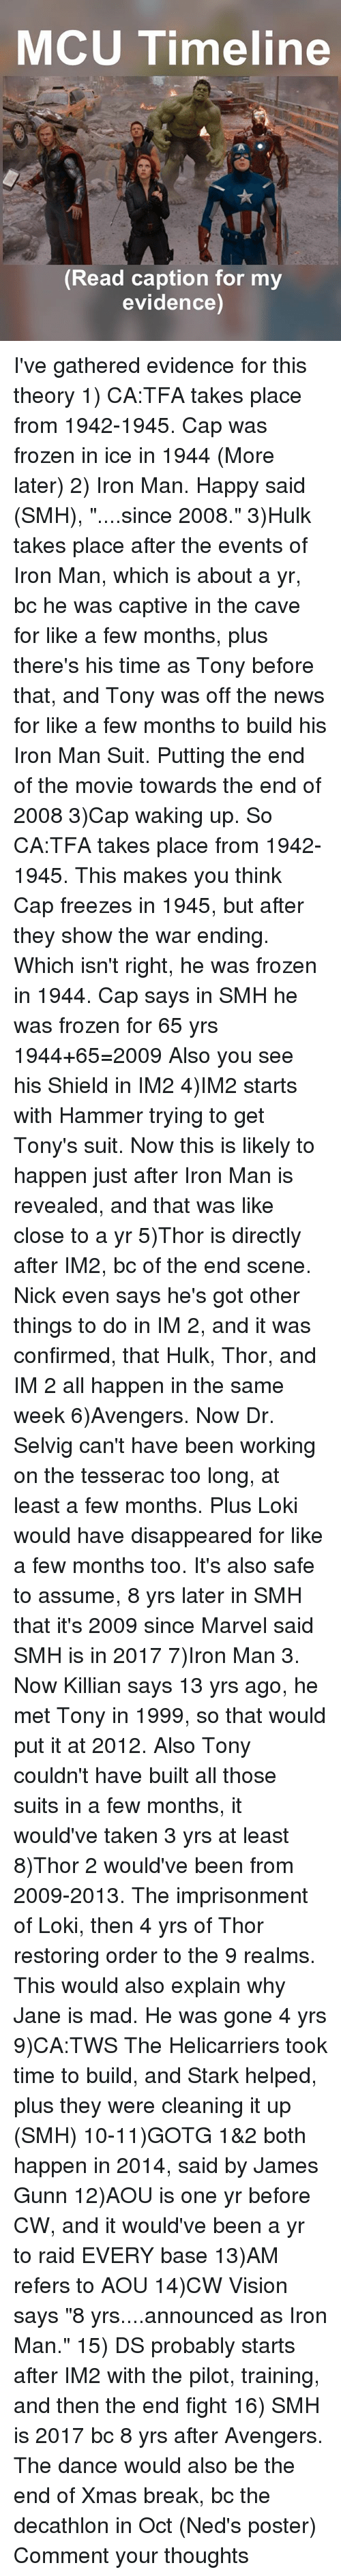 "tonys: MCU Timeline  A,  Read caption for my  evidence) I've gathered evidence for this theory 1) CA:TFA takes place from 1942-1945. Cap was frozen in ice in 1944 (More later) 2) Iron Man. Happy said (SMH), ""....since 2008."" 3)Hulk takes place after the events of Iron Man, which is about a yr, bc he was captive in the cave for like a few months, plus there's his time as Tony before that, and Tony was off the news for like a few months to build his Iron Man Suit. Putting the end of the movie towards the end of 2008 3)Cap waking up. So CA:TFA takes place from 1942-1945. This makes you think Cap freezes in 1945, but after they show the war ending. Which isn't right, he was frozen in 1944. Cap says in SMH he was frozen for 65 yrs 1944+65=2009 Also you see his Shield in IM2 4)IM2 starts with Hammer trying to get Tony's suit. Now this is likely to happen just after Iron Man is revealed, and that was like close to a yr 5)Thor is directly after IM2, bc of the end scene. Nick even says he's got other things to do in IM 2, and it was confirmed, that Hulk, Thor, and IM 2 all happen in the same week 6)Avengers. Now Dr. Selvig can't have been working on the tesserac too long, at least a few months. Plus Loki would have disappeared for like a few months too. It's also safe to assume, 8 yrs later in SMH that it's 2009 since Marvel said SMH is in 2017 7)Iron Man 3. Now Killian says 13 yrs ago, he met Tony in 1999, so that would put it at 2012. Also Tony couldn't have built all those suits in a few months, it would've taken 3 yrs at least 8)Thor 2 would've been from 2009-2013. The imprisonment of Loki, then 4 yrs of Thor restoring order to the 9 realms. This would also explain why Jane is mad. He was gone 4 yrs 9)CA:TWS The Helicarriers took time to build, and Stark helped, plus they were cleaning it up (SMH) 10-11)GOTG 1&2 both happen in 2014, said by James Gunn 12)AOU is one yr before CW, and it would've been a yr to raid EVERY base 13)AM refers to AOU 14)CW Vision says ""8 yrs....announced as Iron Man."" 15) DS probably starts after IM2 with the pilot, training, and then the end fight 16) SMH is 2017 bc 8 yrs after Avengers. The dance would also be the end of Xmas break, bc the decathlon in Oct (Ned's poster) Comment your thoughts"